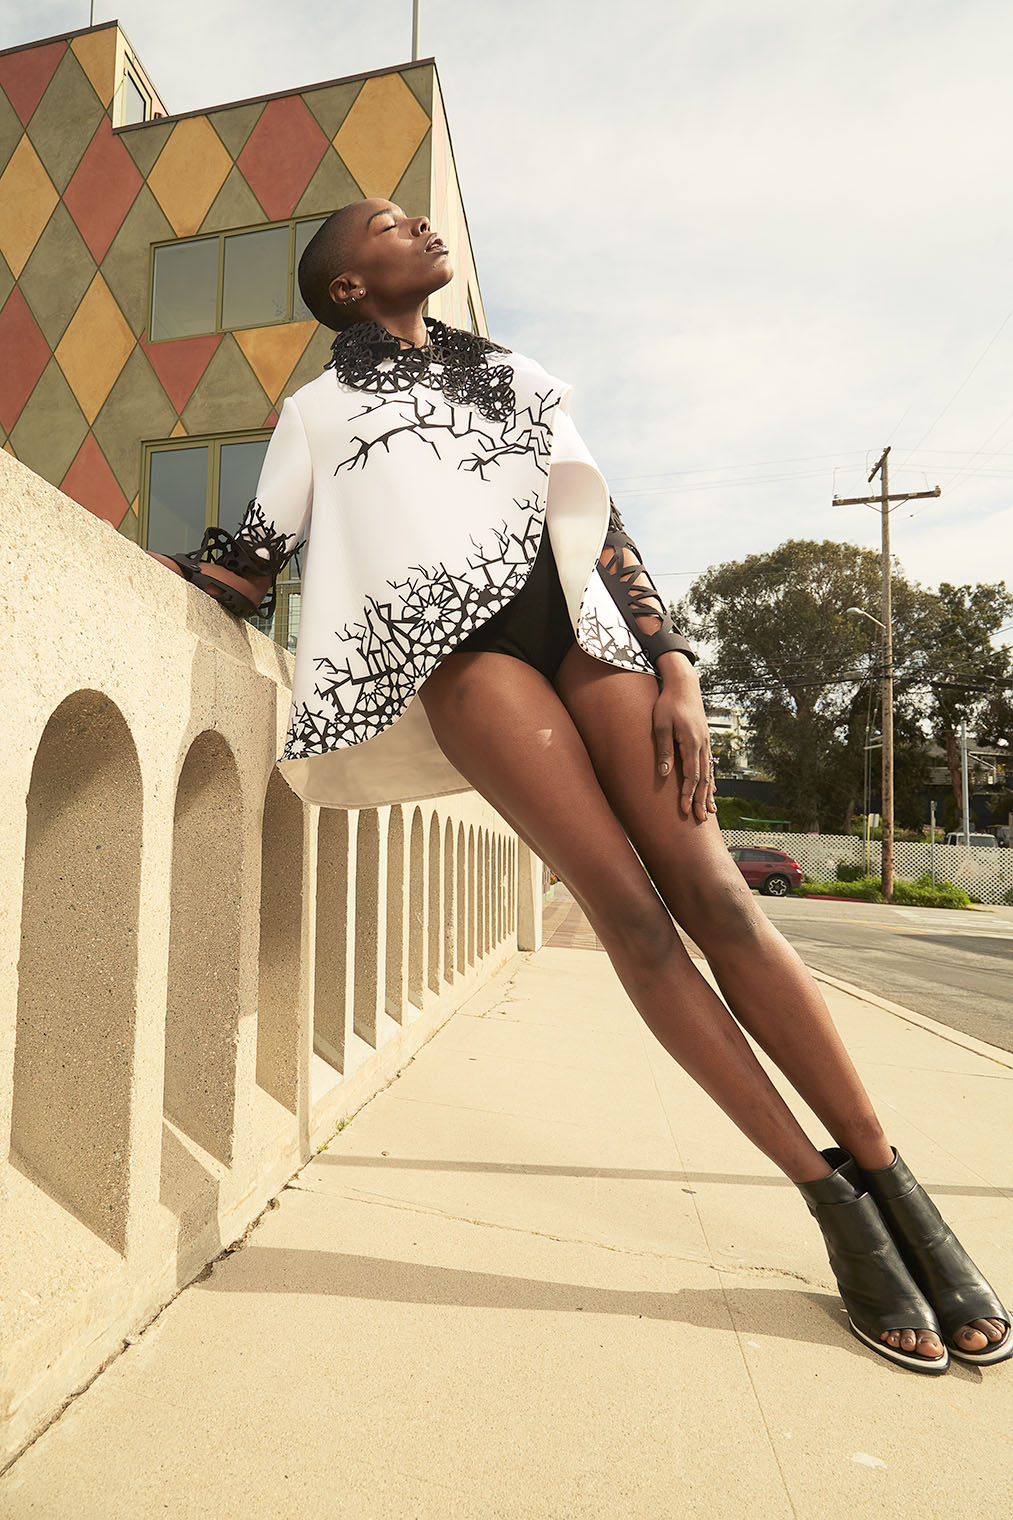 black woman in avantgarde outfit on bridge in dynamic fashion pose in dynamic photography by Robert Wilde